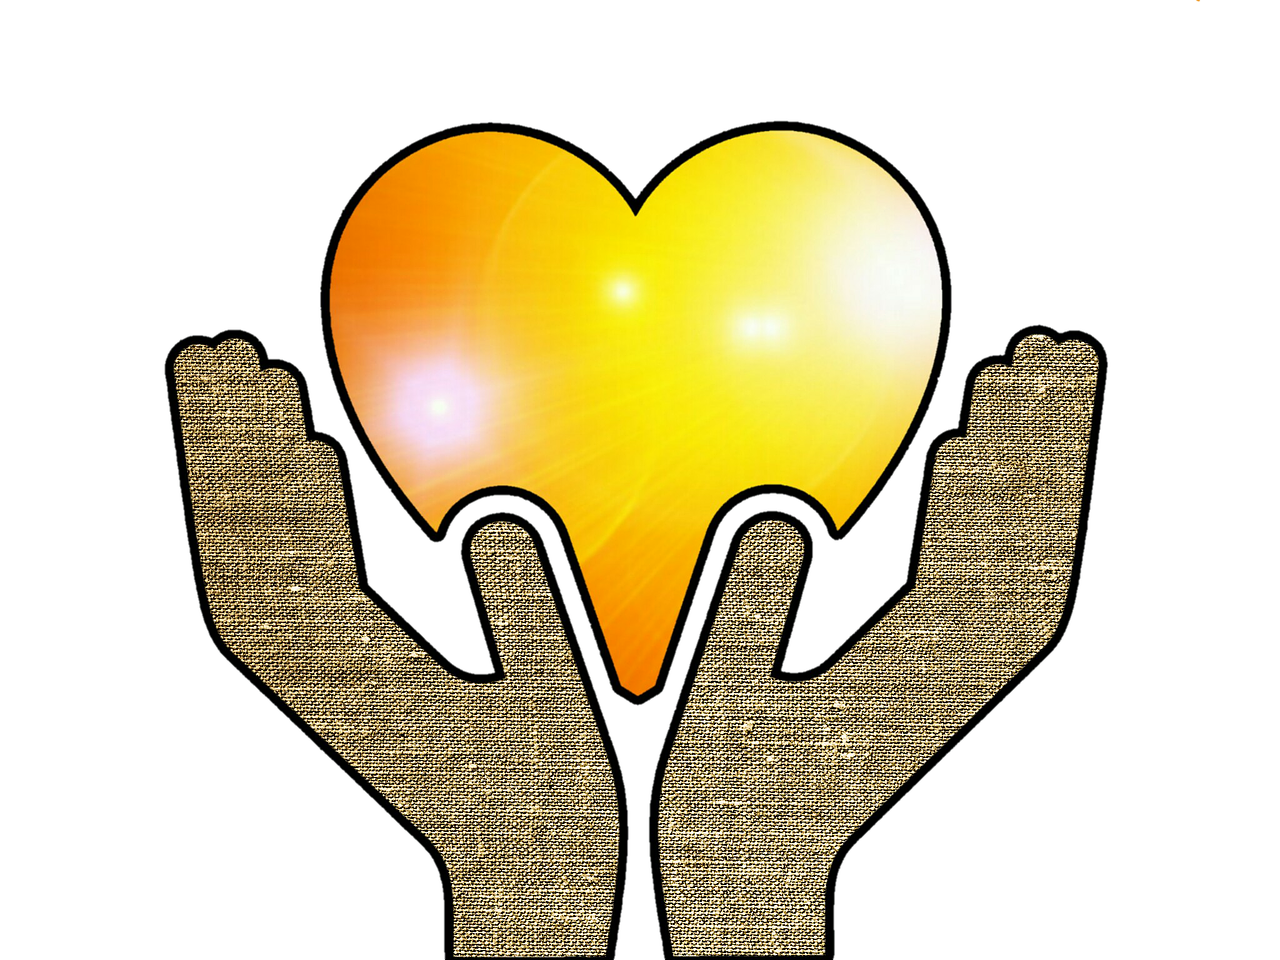 Donation clipart hand heart. Giving back atn event